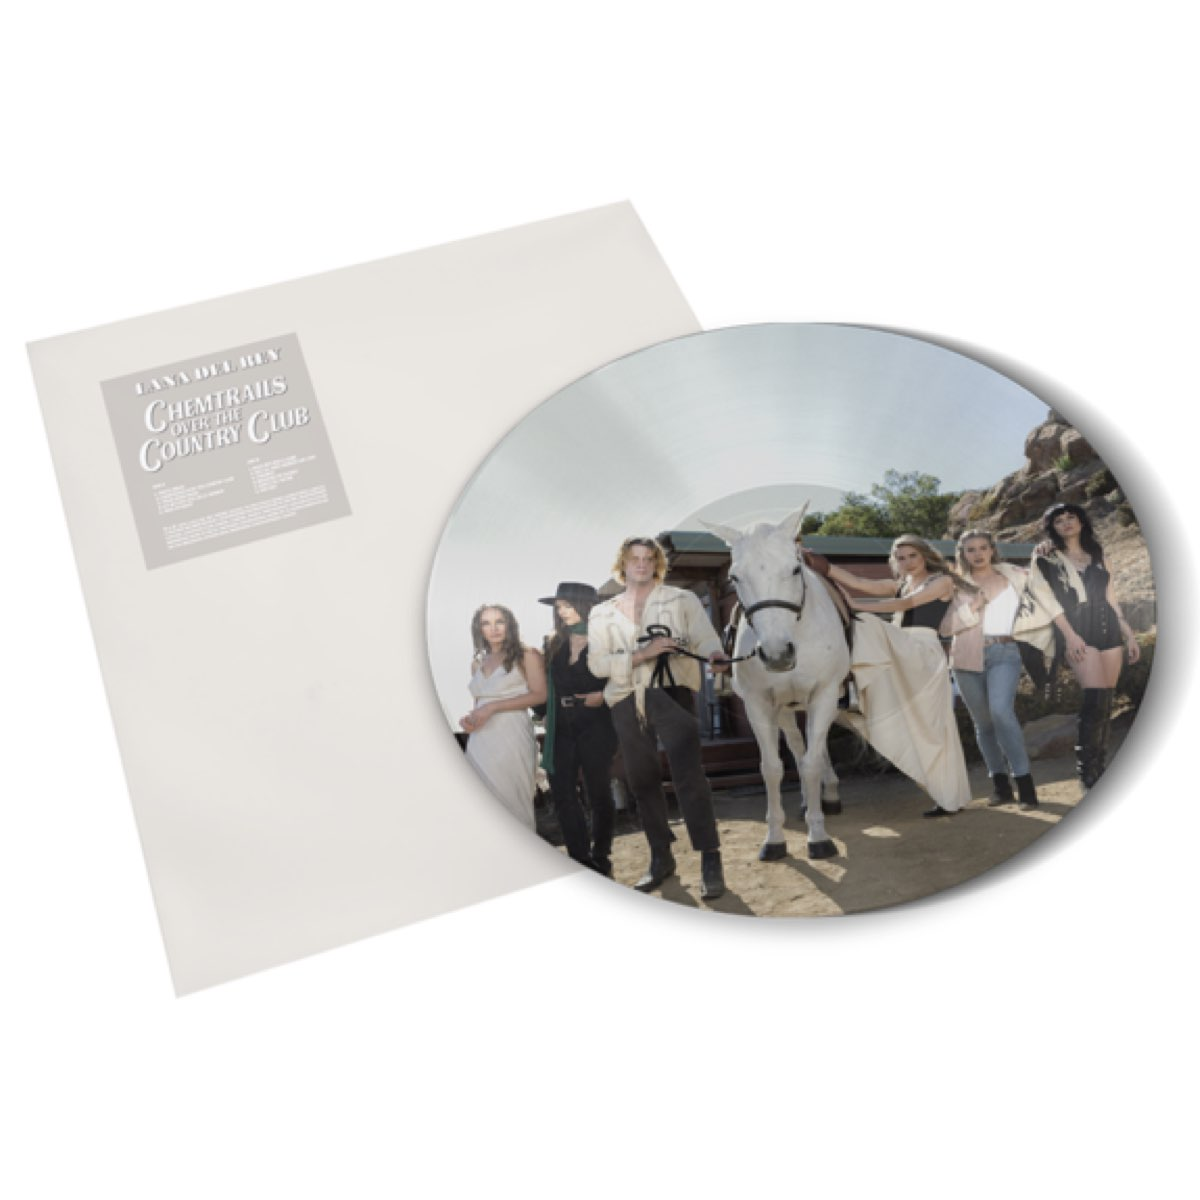 Lana Del Rey - Chemtrails Over the Country Club [Limited Spotify Exclusive Edition - Picture Disc]